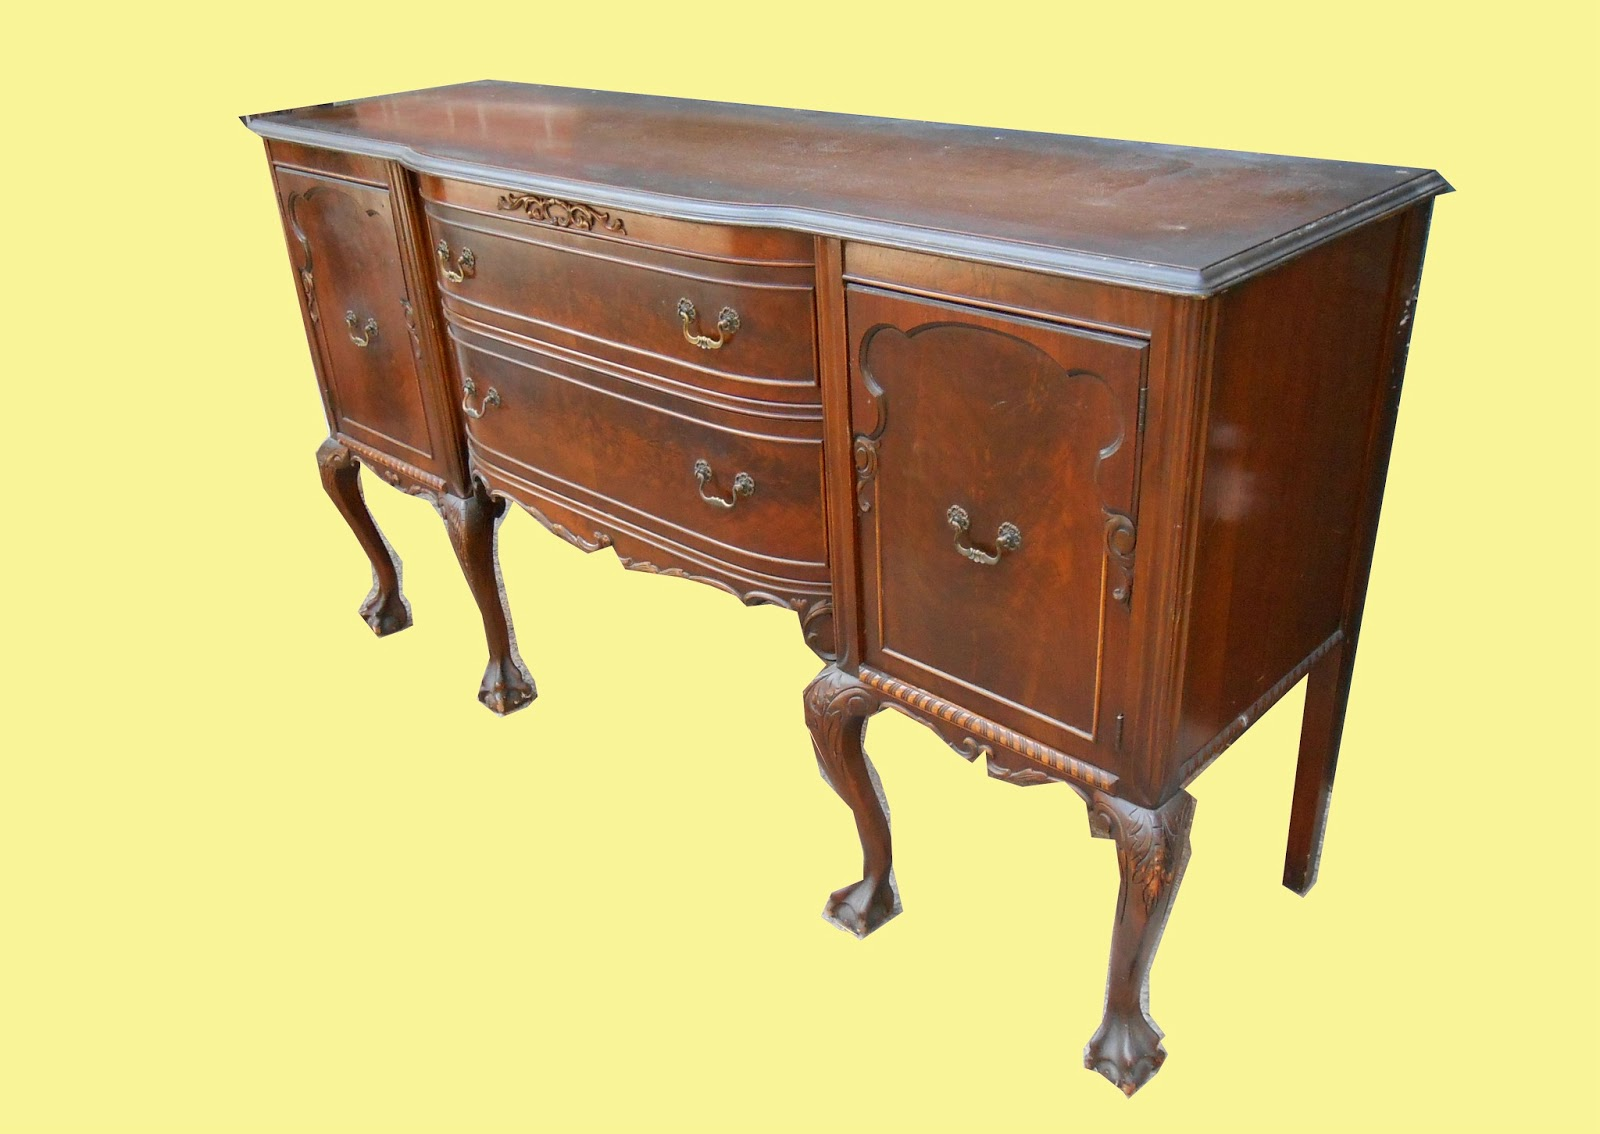 uhuru furniture collectibles 1940s chippendale style. Black Bedroom Furniture Sets. Home Design Ideas